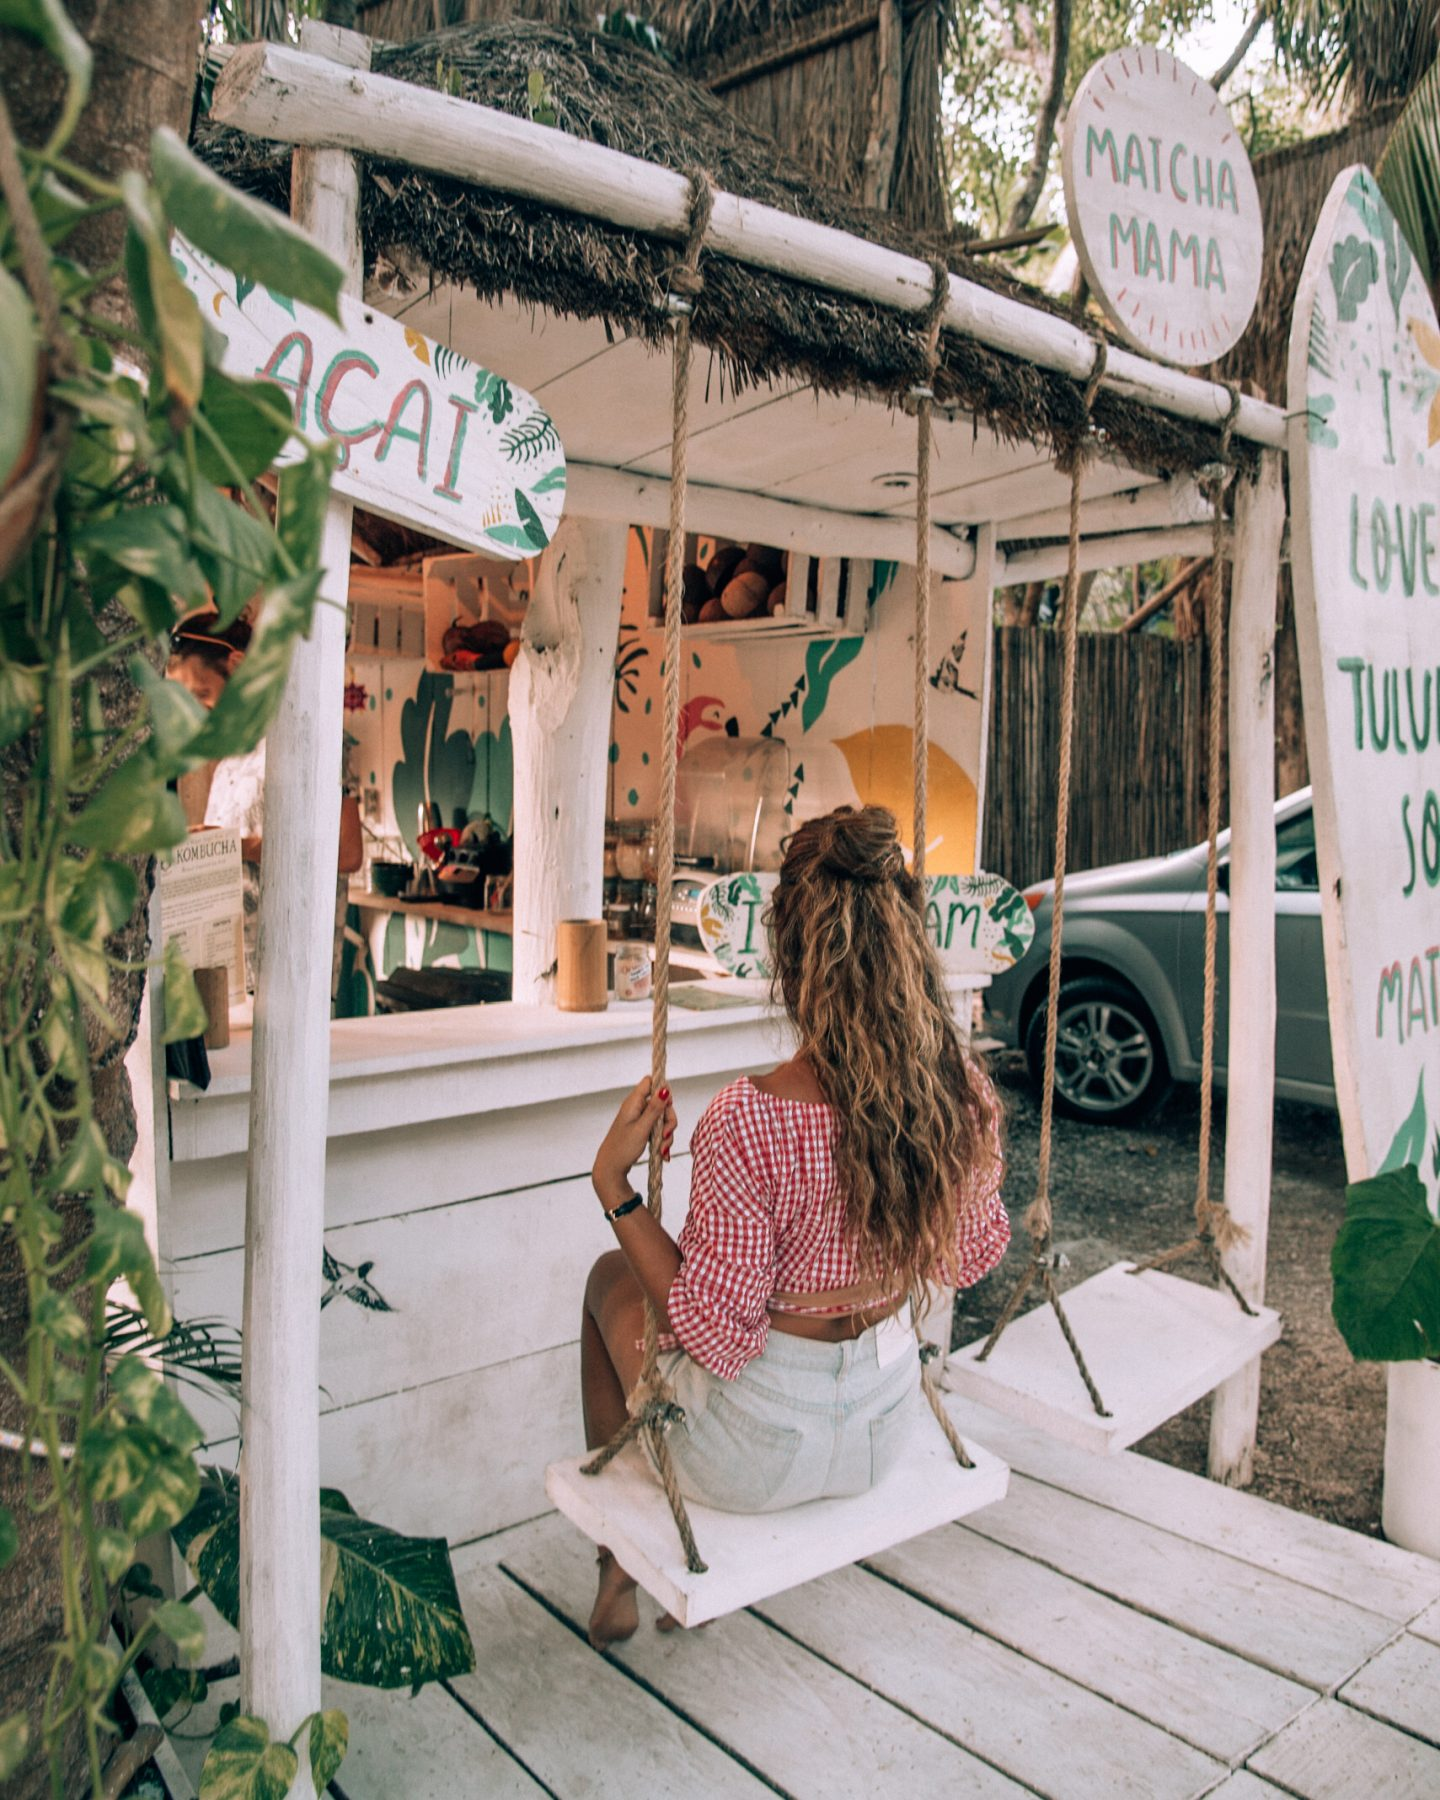 A woman on the swings at Matcha Mama, one of the famous Tulum Instagram pictures.